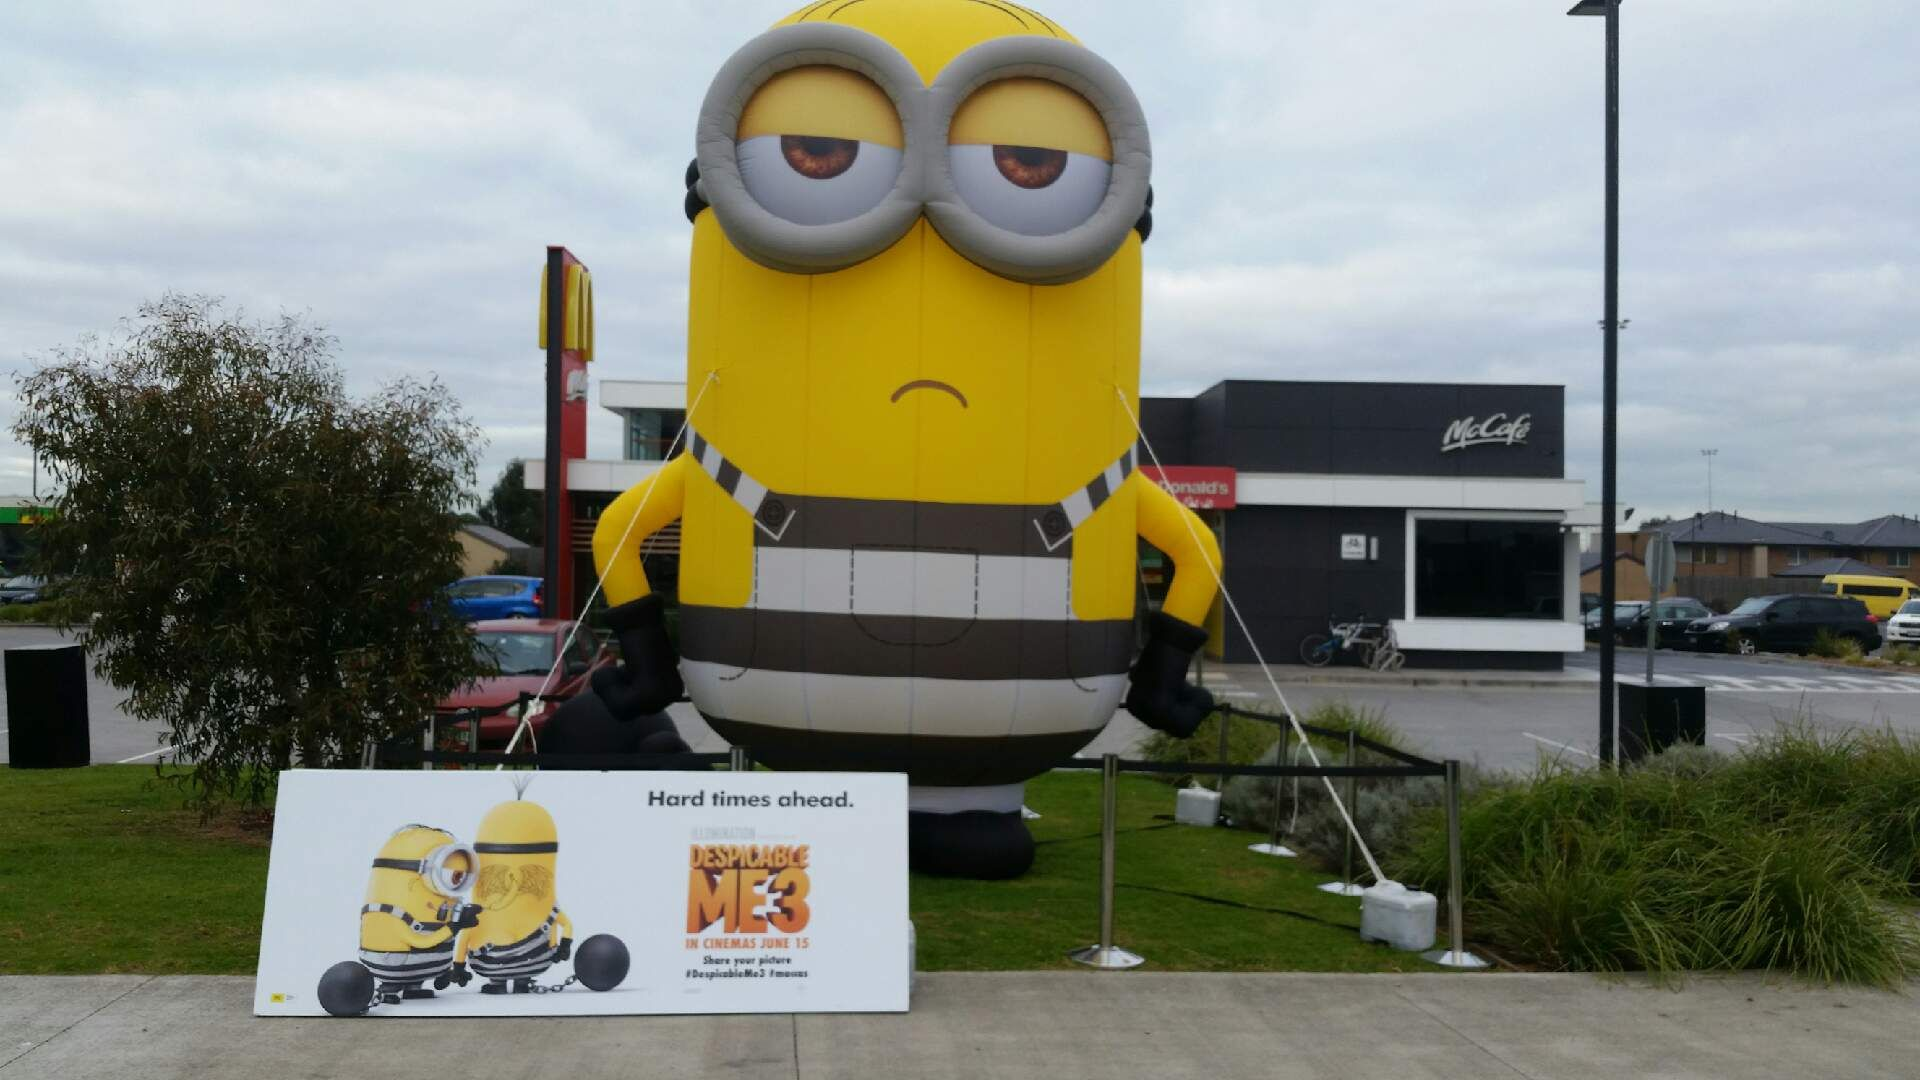 Exposure Group Giant Inflatable Minion